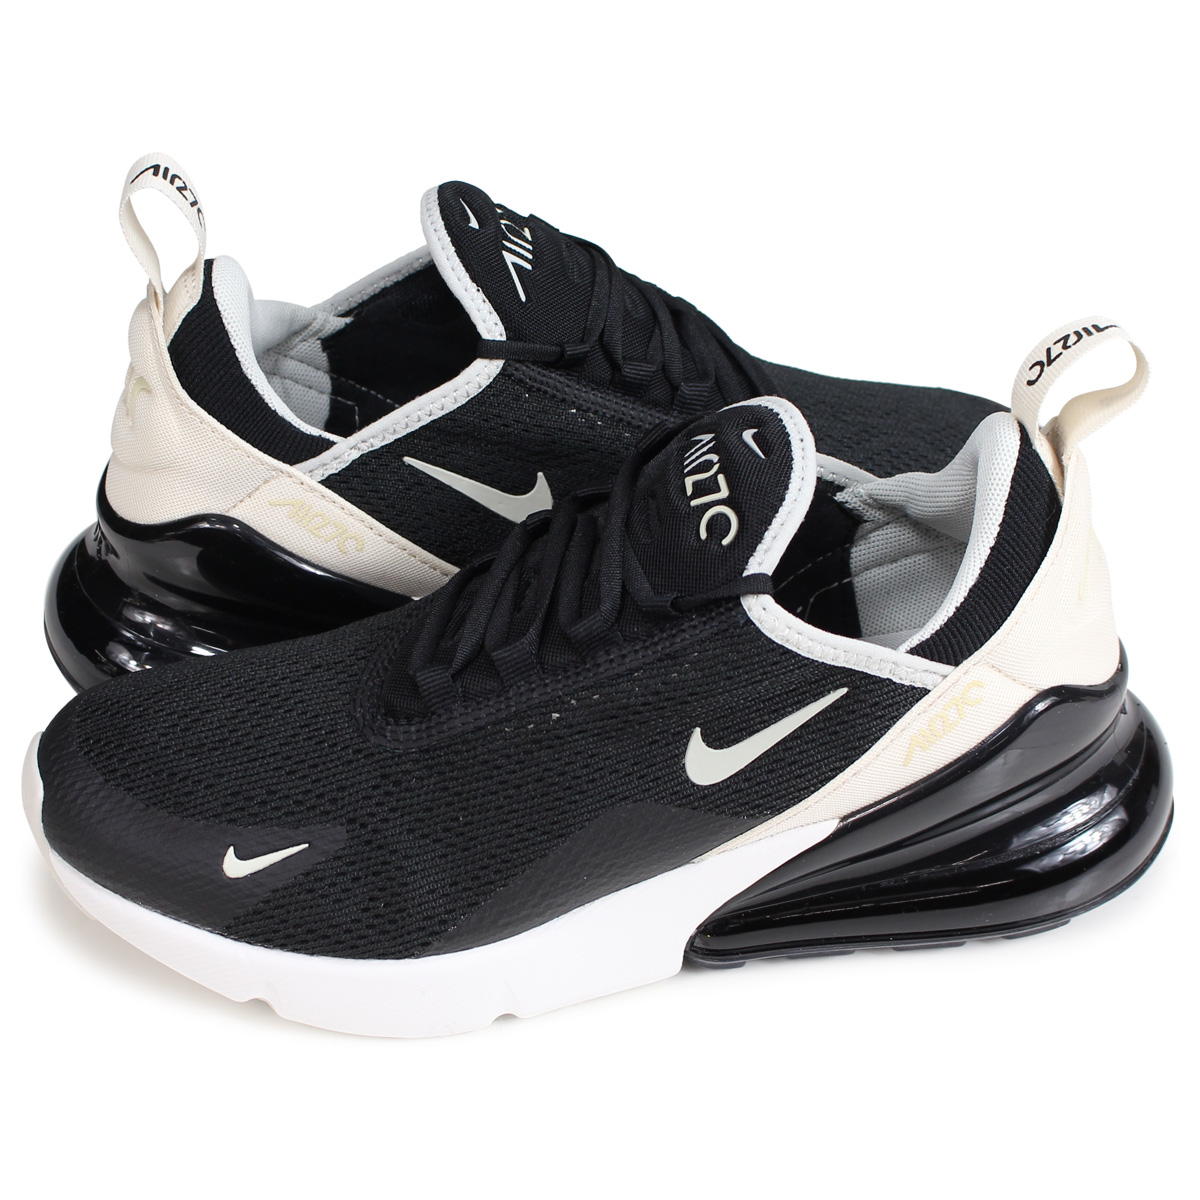 promo code 7267e 4252c Nike NIKE Air Max 270 sneakers Lady's WMNS AIR MAX 270 black AH6789-010  [load planned Shinnyu load in reservation product 2/13 containing] [192]